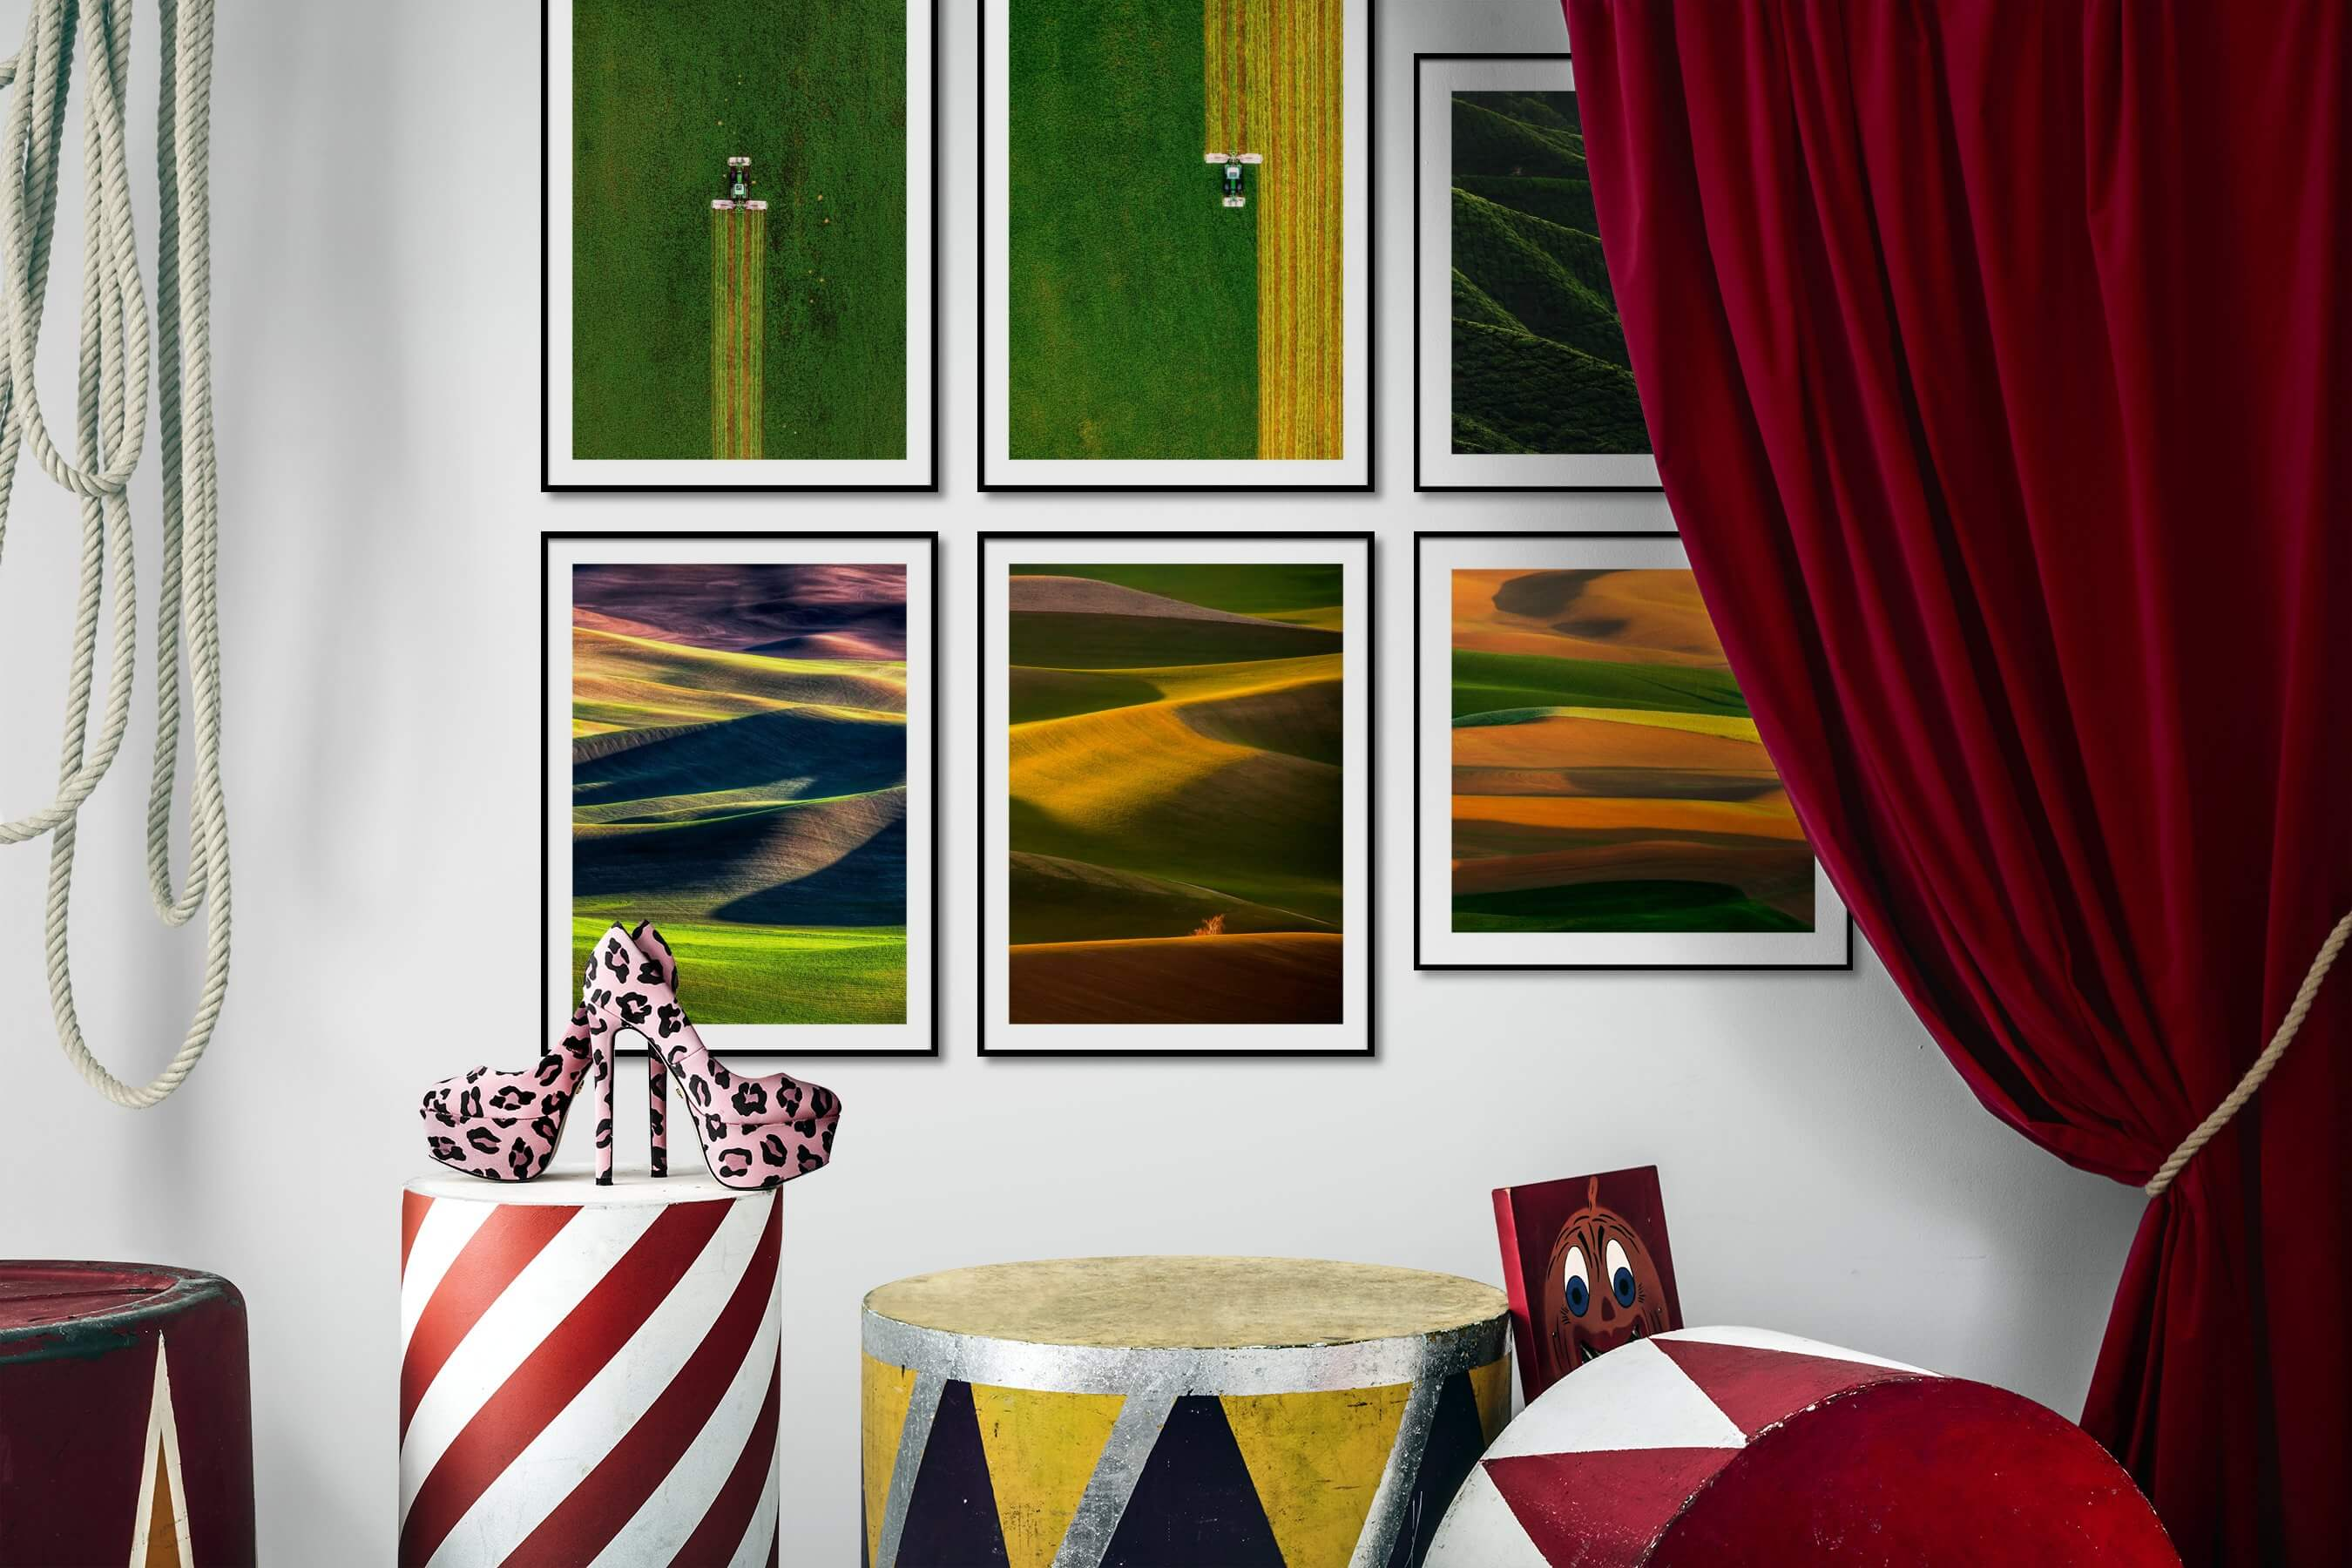 Gallery wall idea with six framed pictures arranged on a wall depicting For the Minimalist, Country Life, and For the Moderate